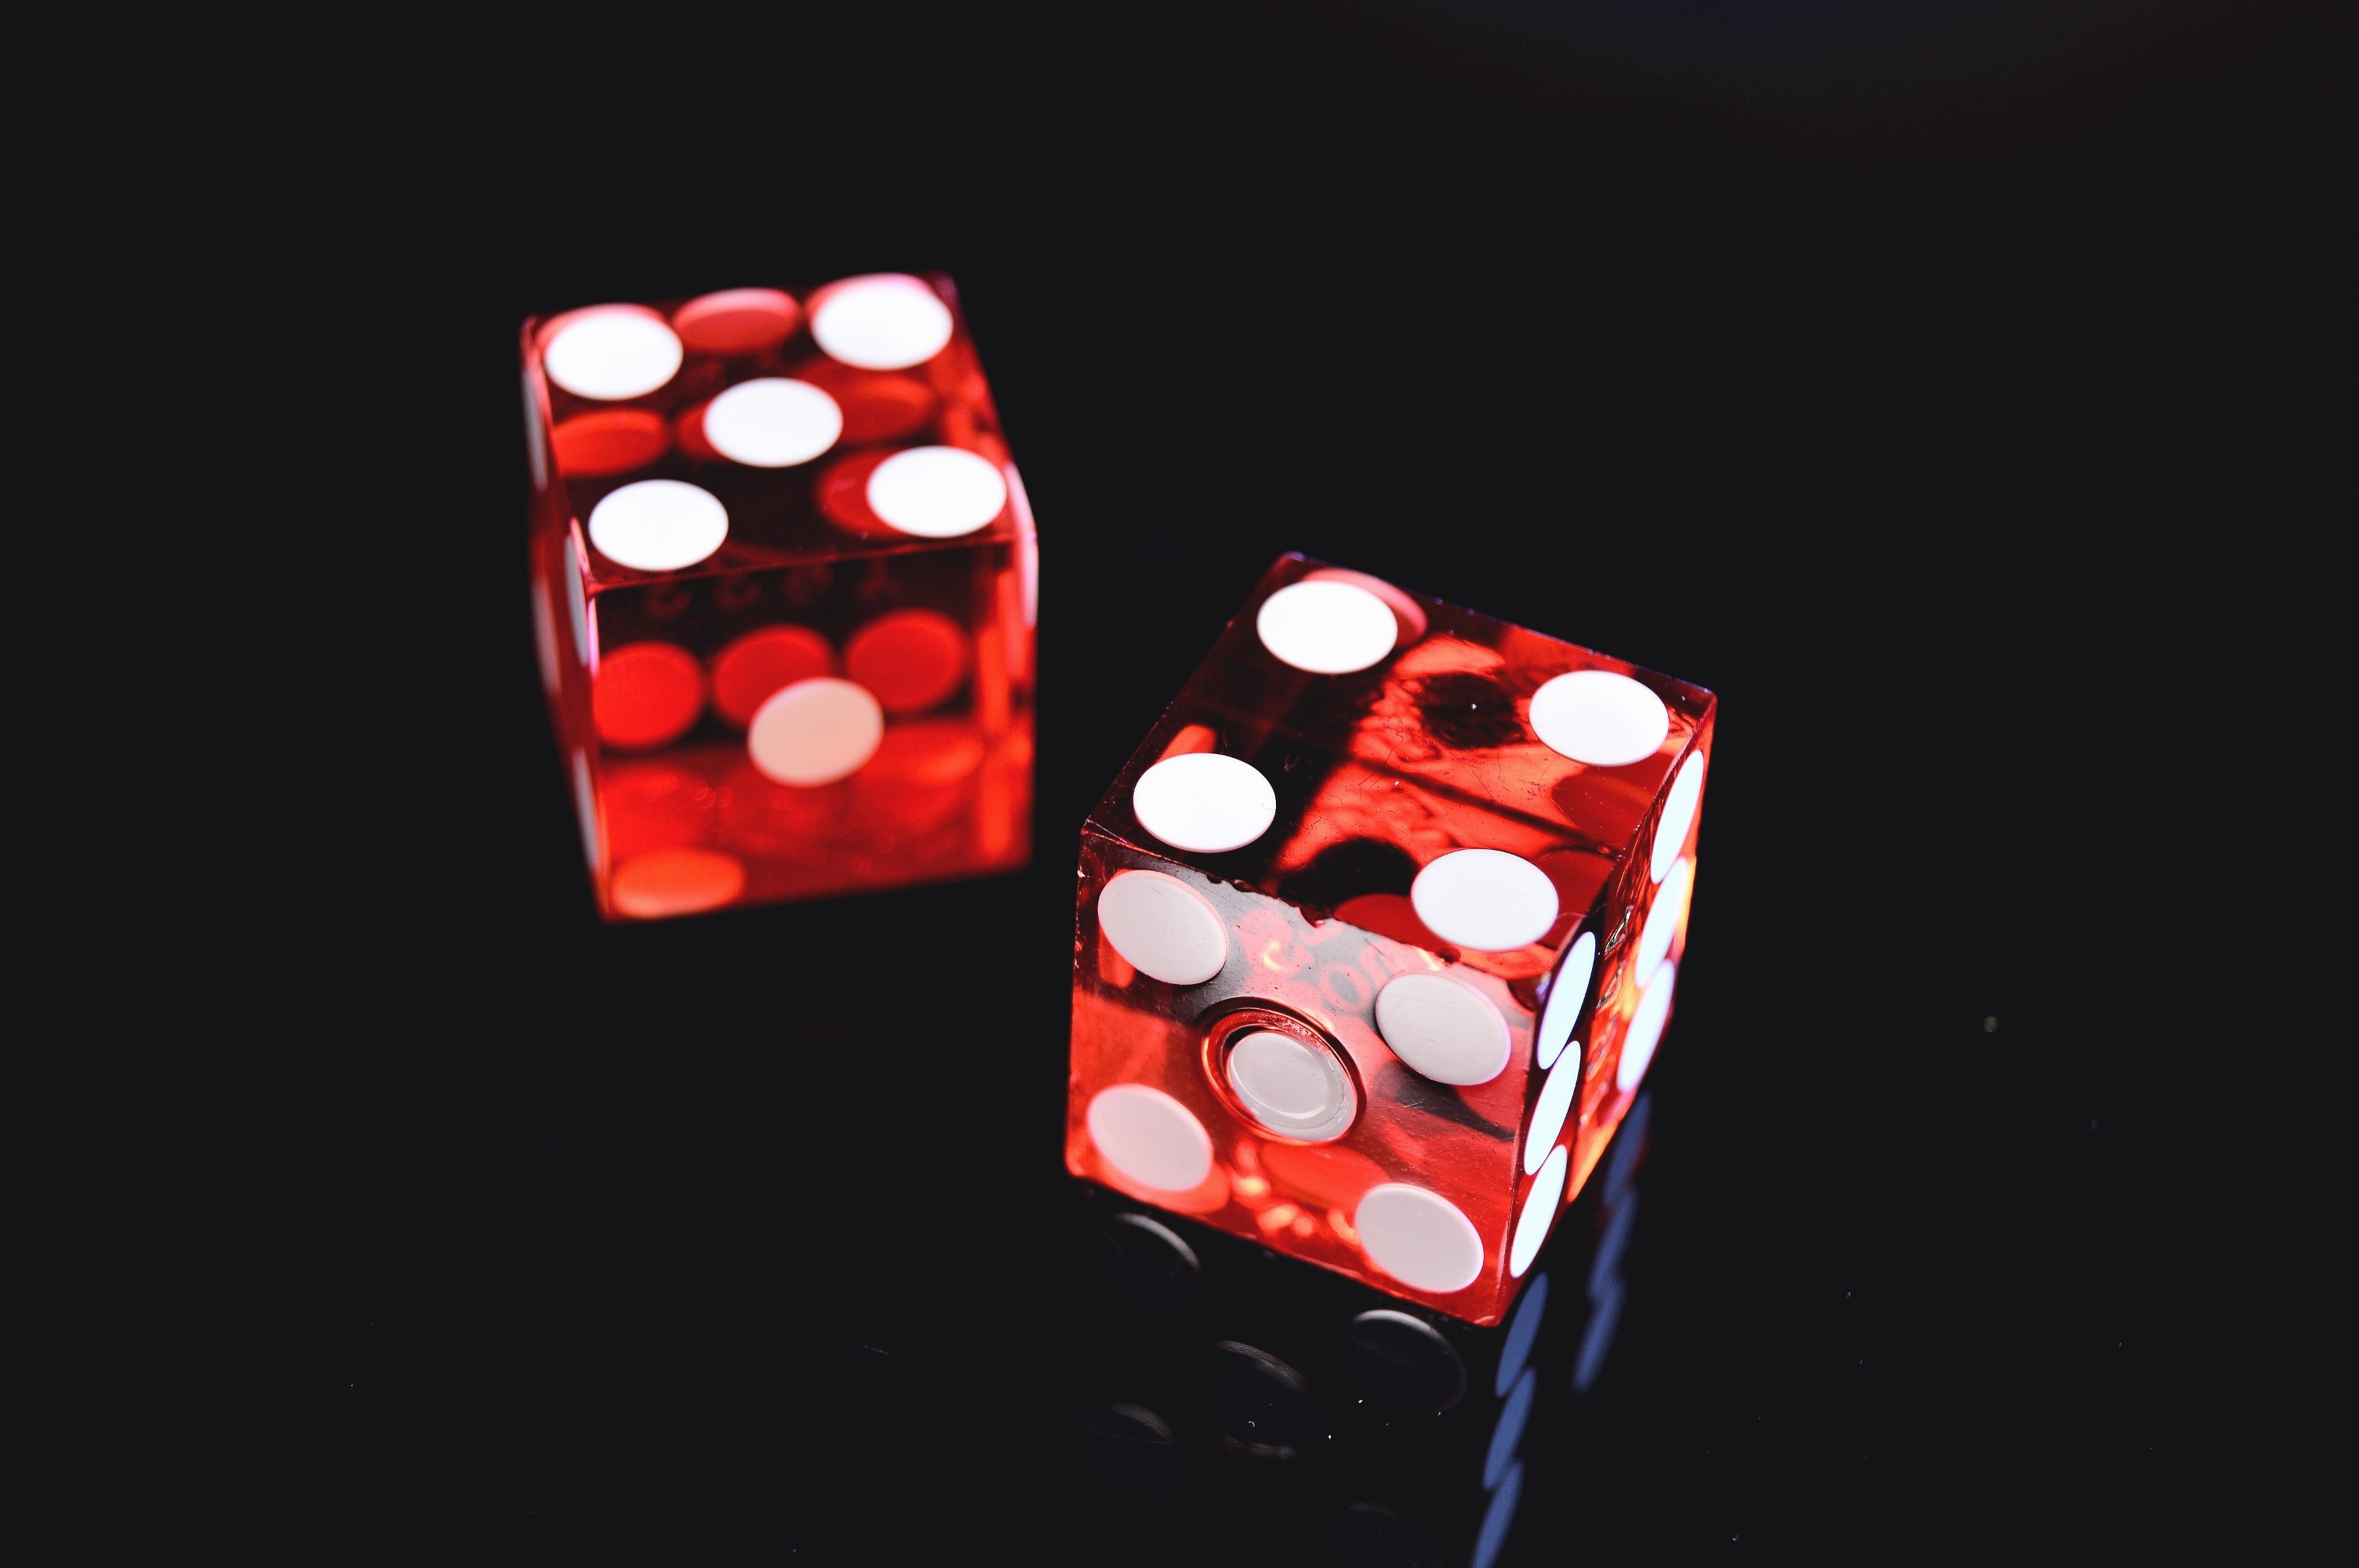 Video Game Girl Wallpaper Free Stock Photo Of Bet Dice Fence